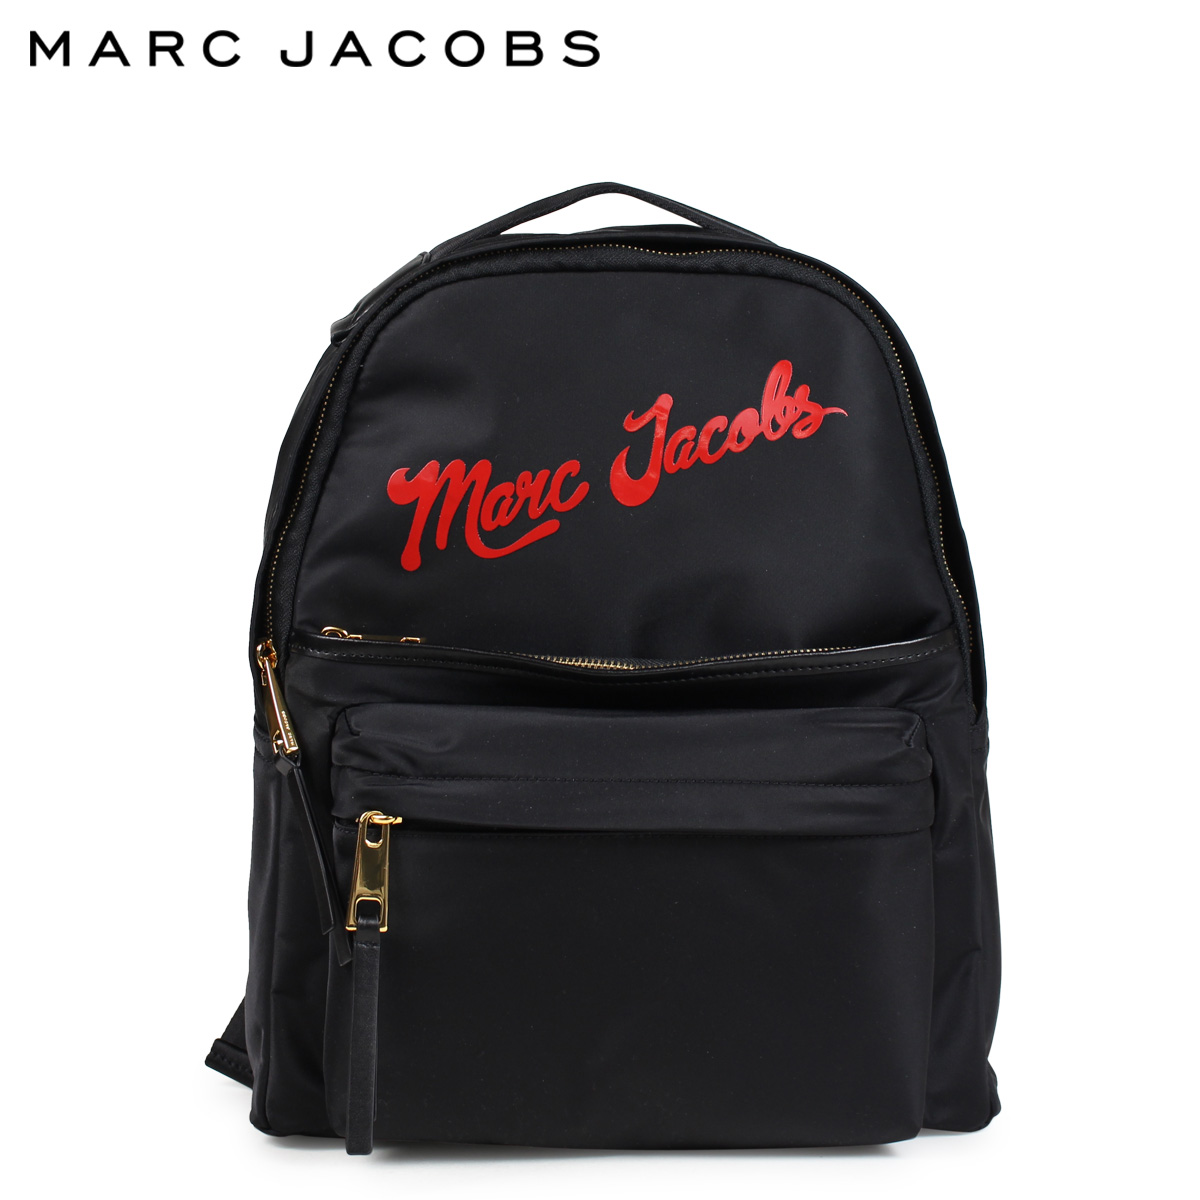 bcf8bb1eca89 MARC JACOBS mark Jacobs rucksack bag backpack Lady s NYLON LARGE BACKPACK  black M0014161  1 8 Shinnyu load